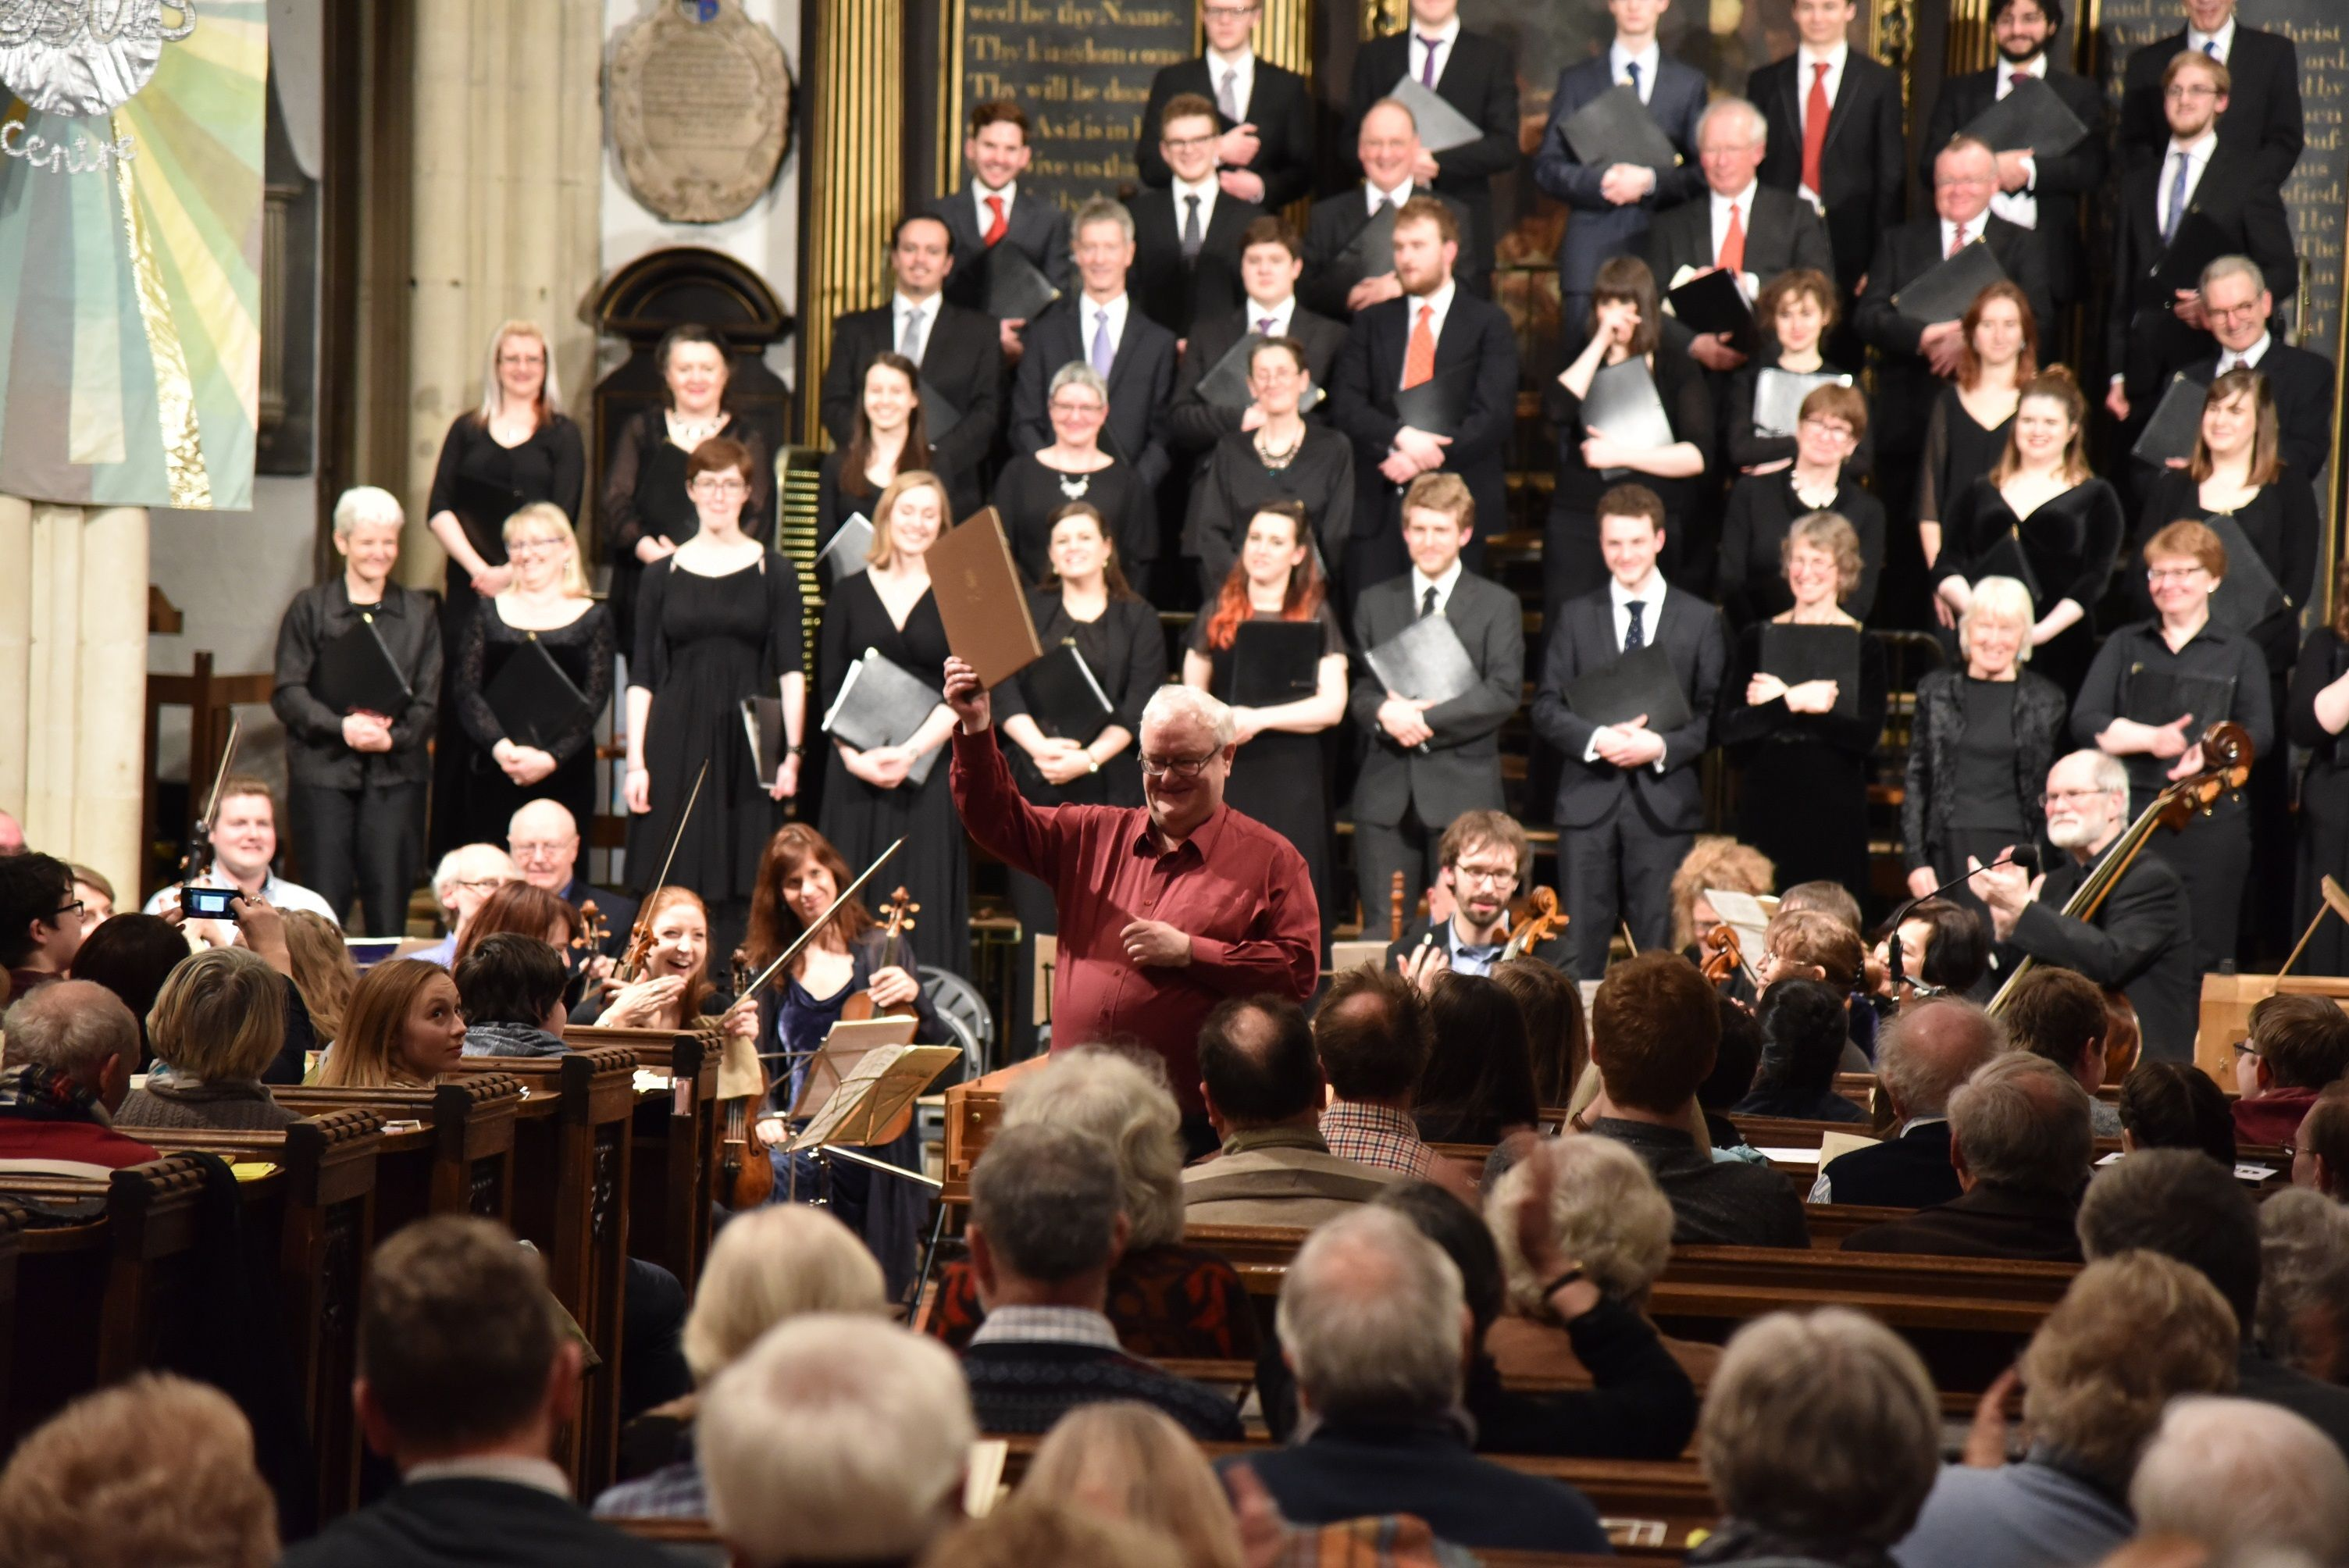 Bach Mass in B Minor, March 2017